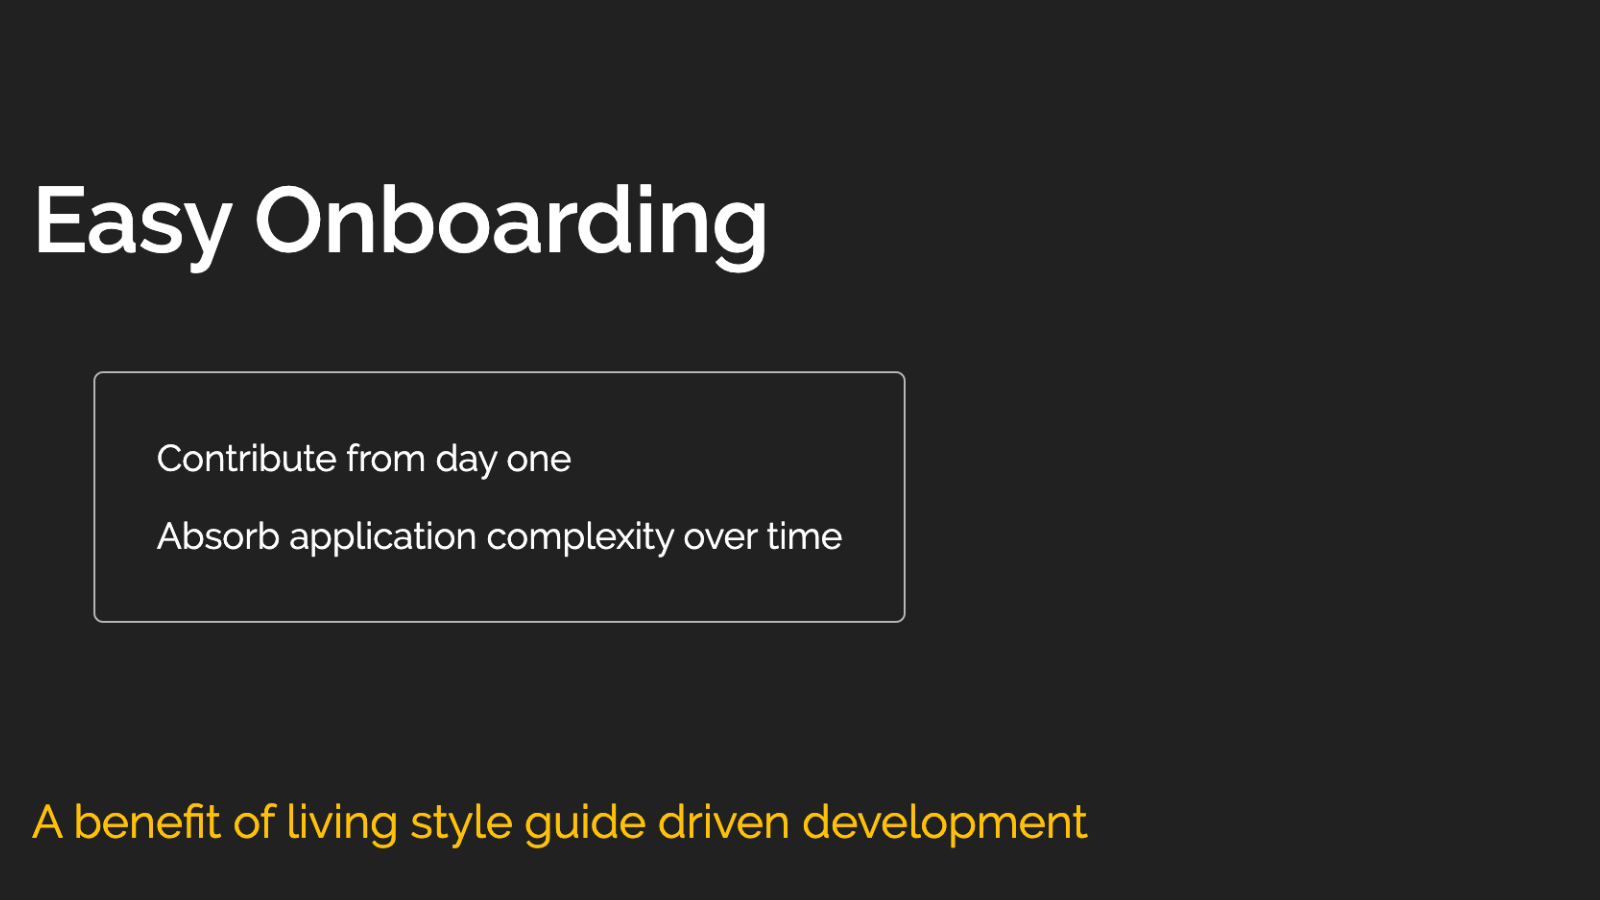 Slide content, Easy onboarding, a benefit of living style guide driven development